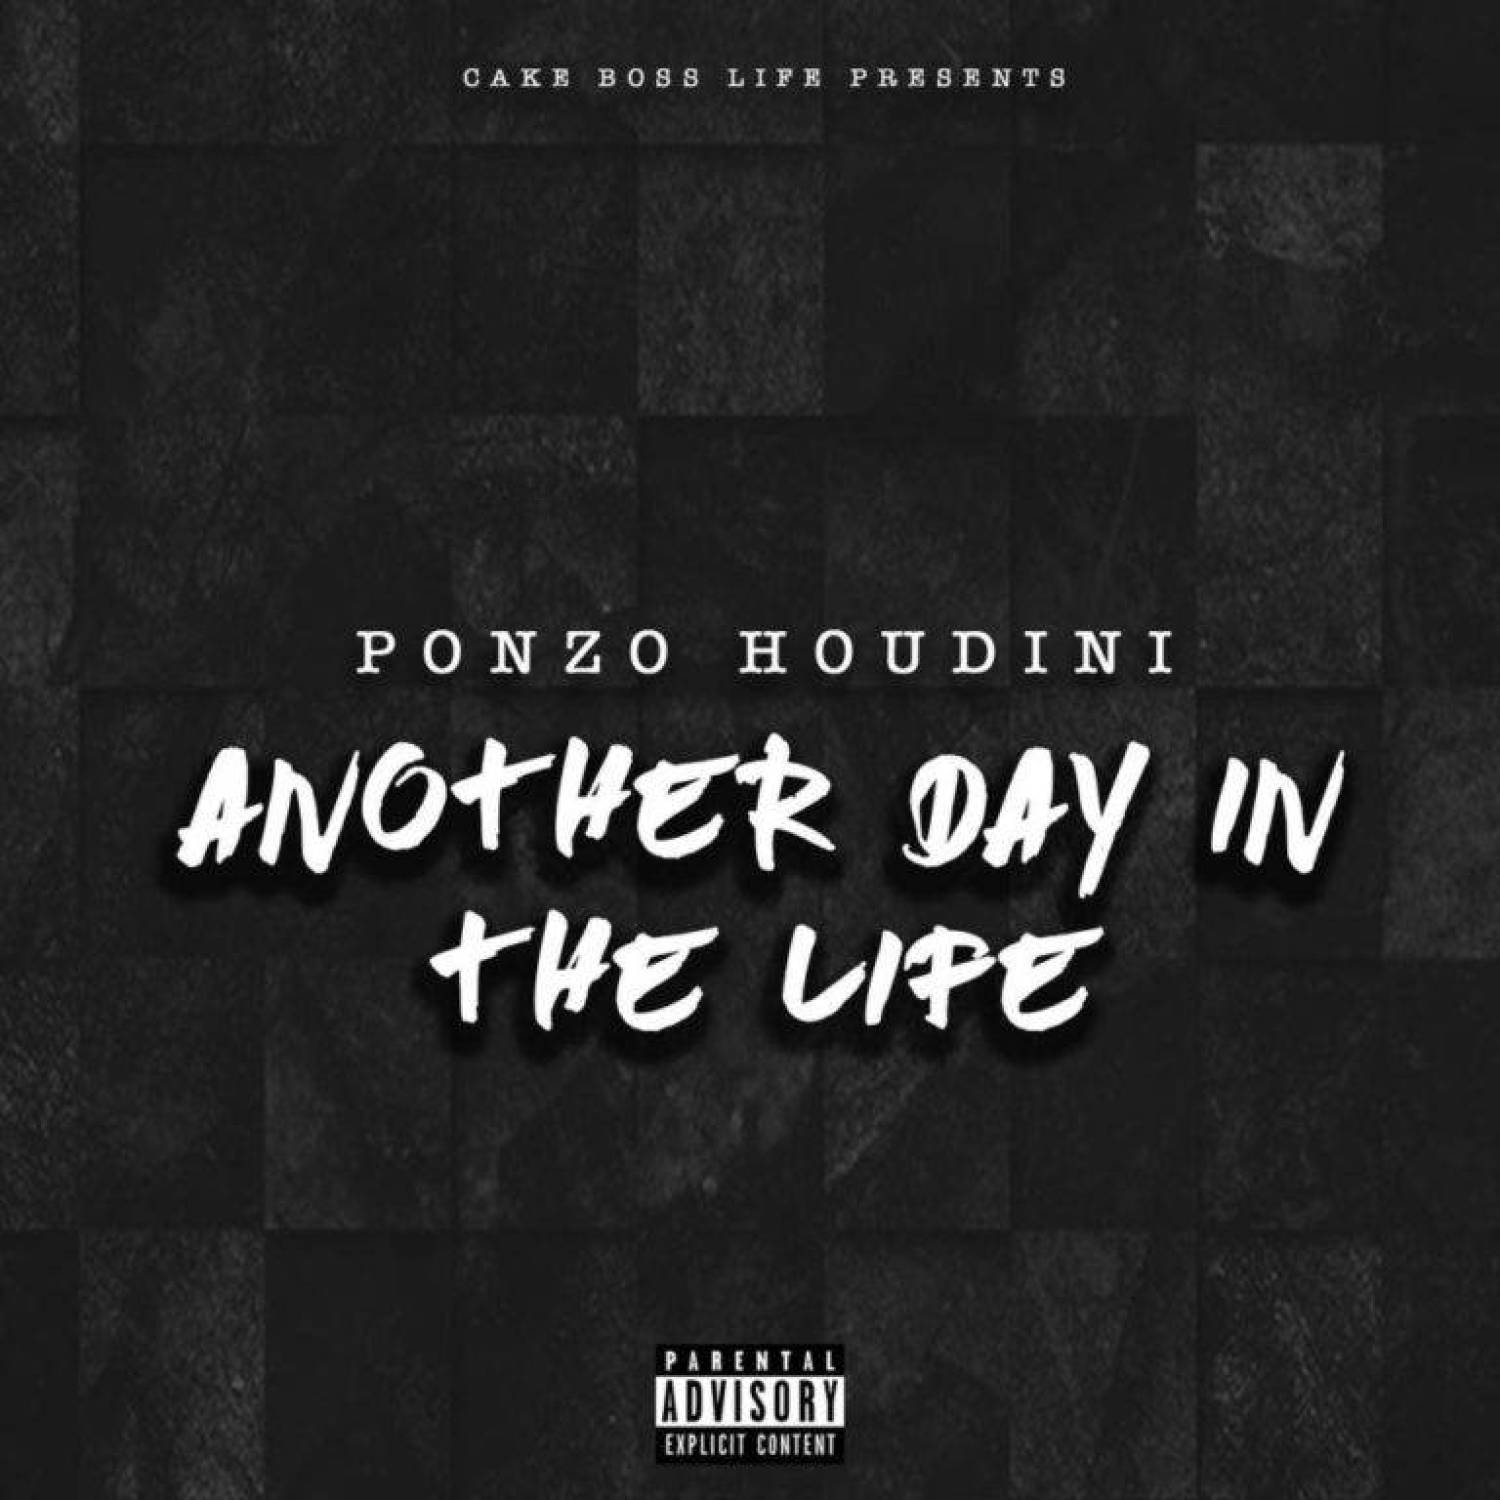 DOWNLOAD MP3: Ponzo Houdini – Another Day In The Life(Free MP3) AUDIO 320kbps